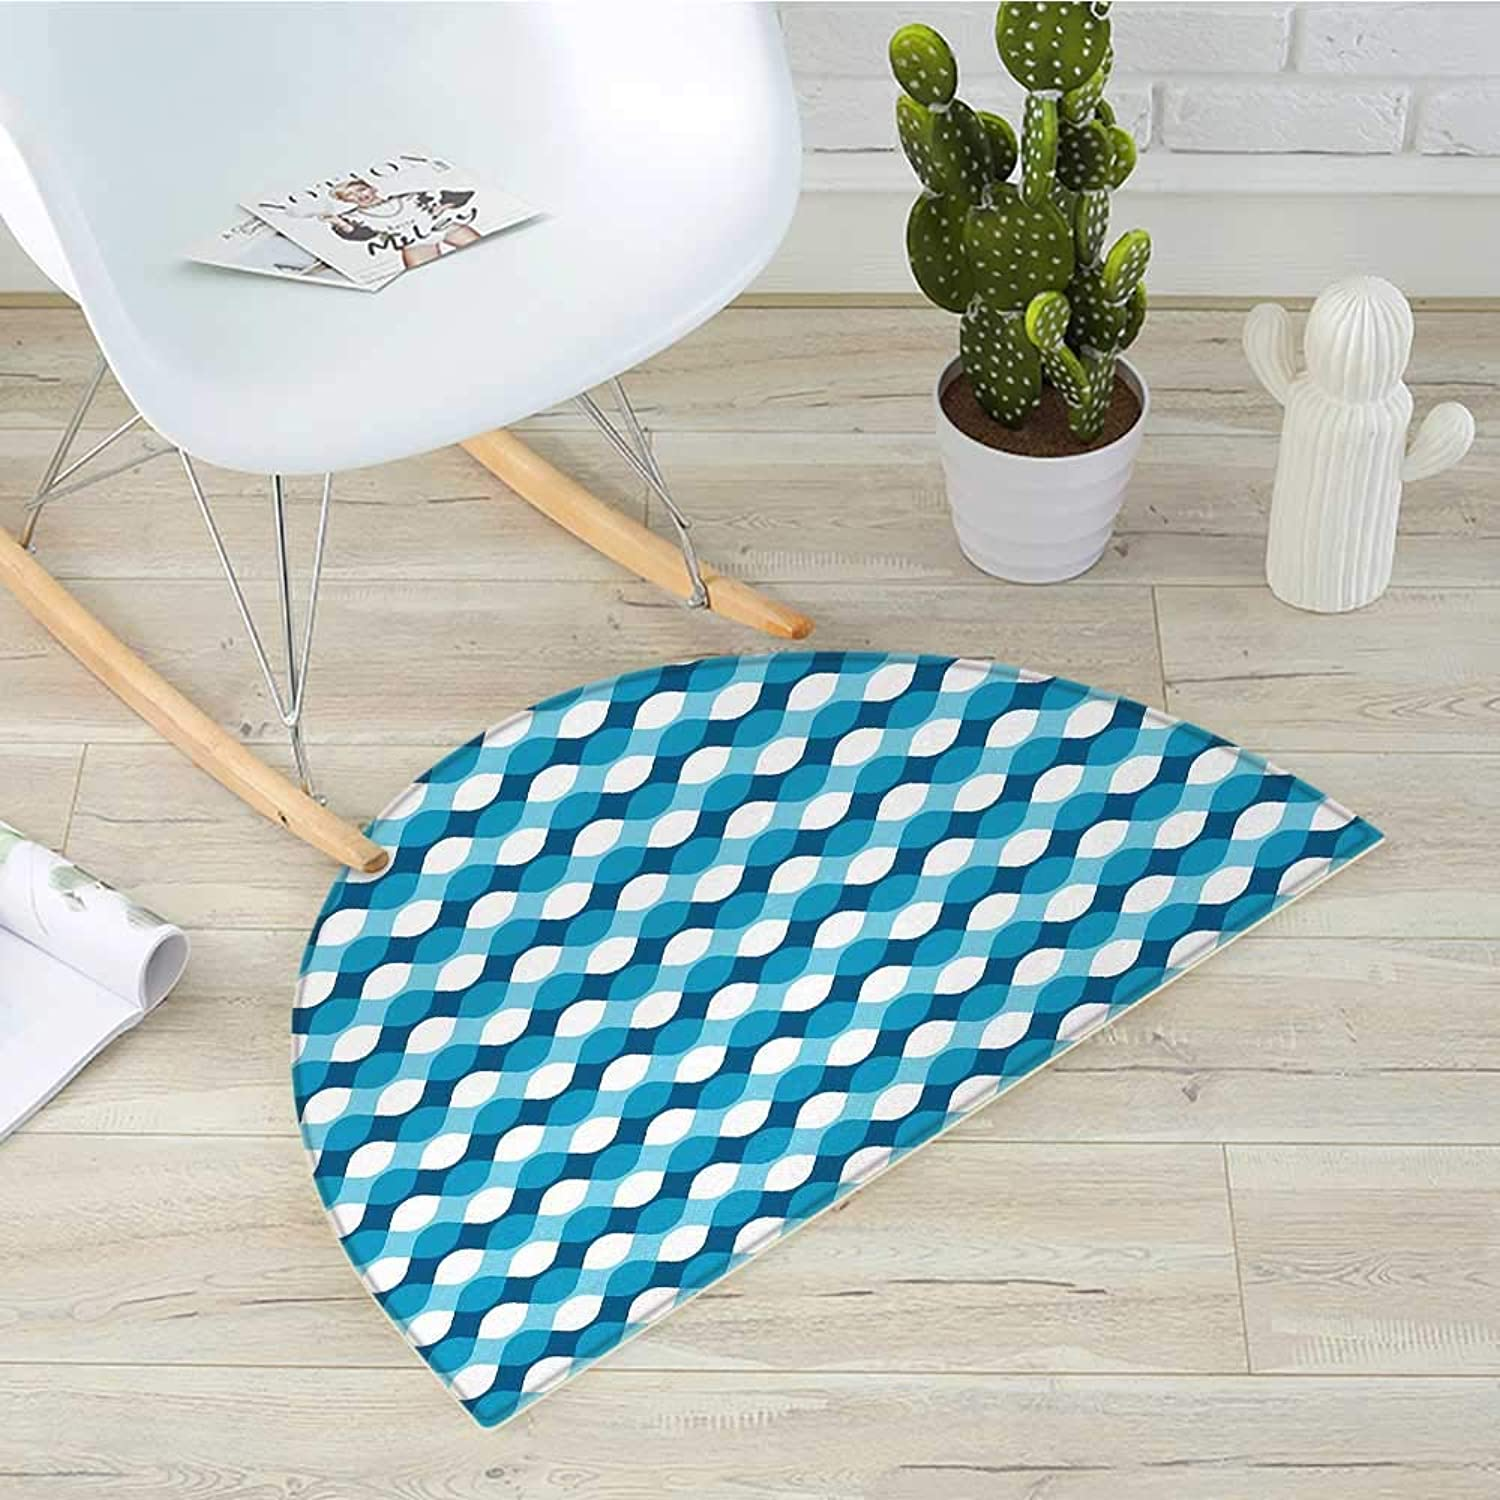 bluee and White Half Round Door mats Horizontal Waves Overlapping Borders Abstract Sea Inspired Flow Bathroom Mat H 39.3  xD 59  bluee Pale bluee White